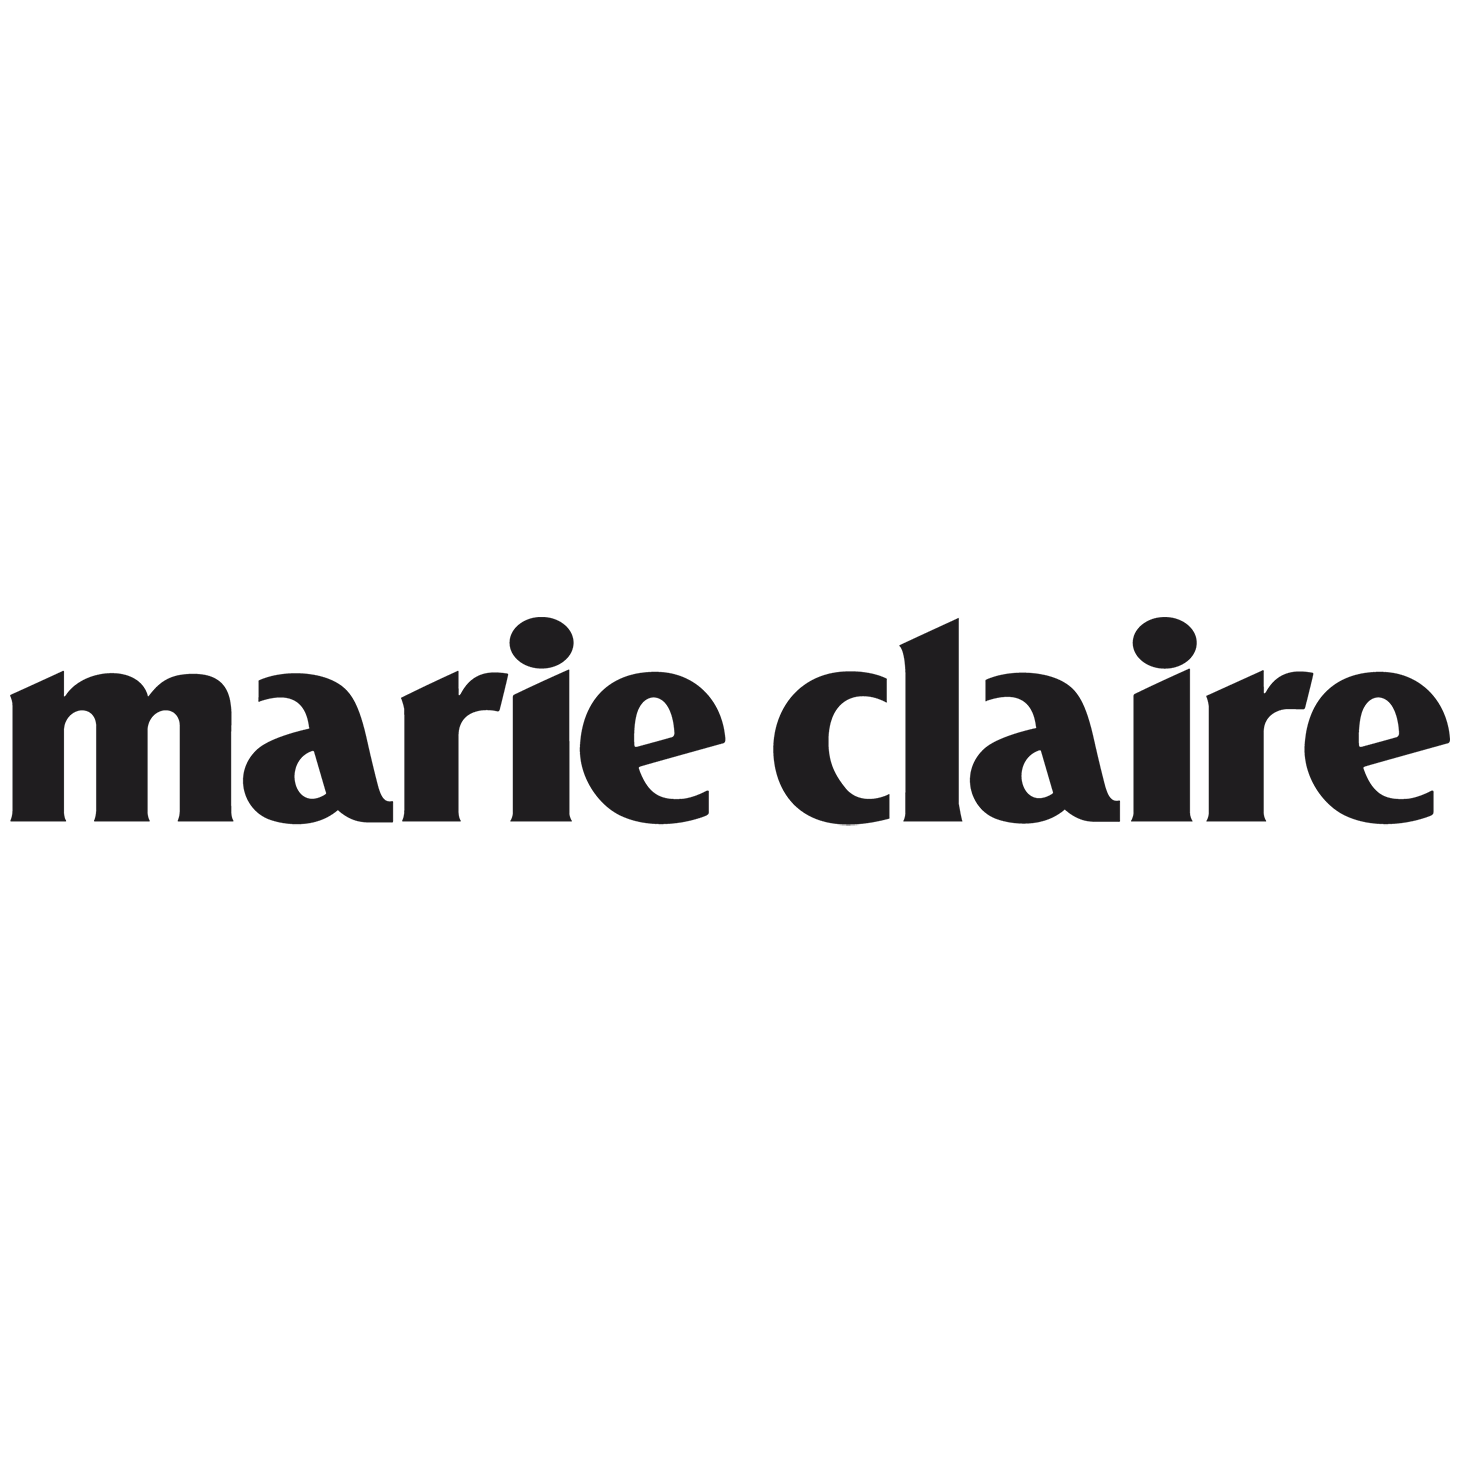 Marie Claire Logo Black Transparent